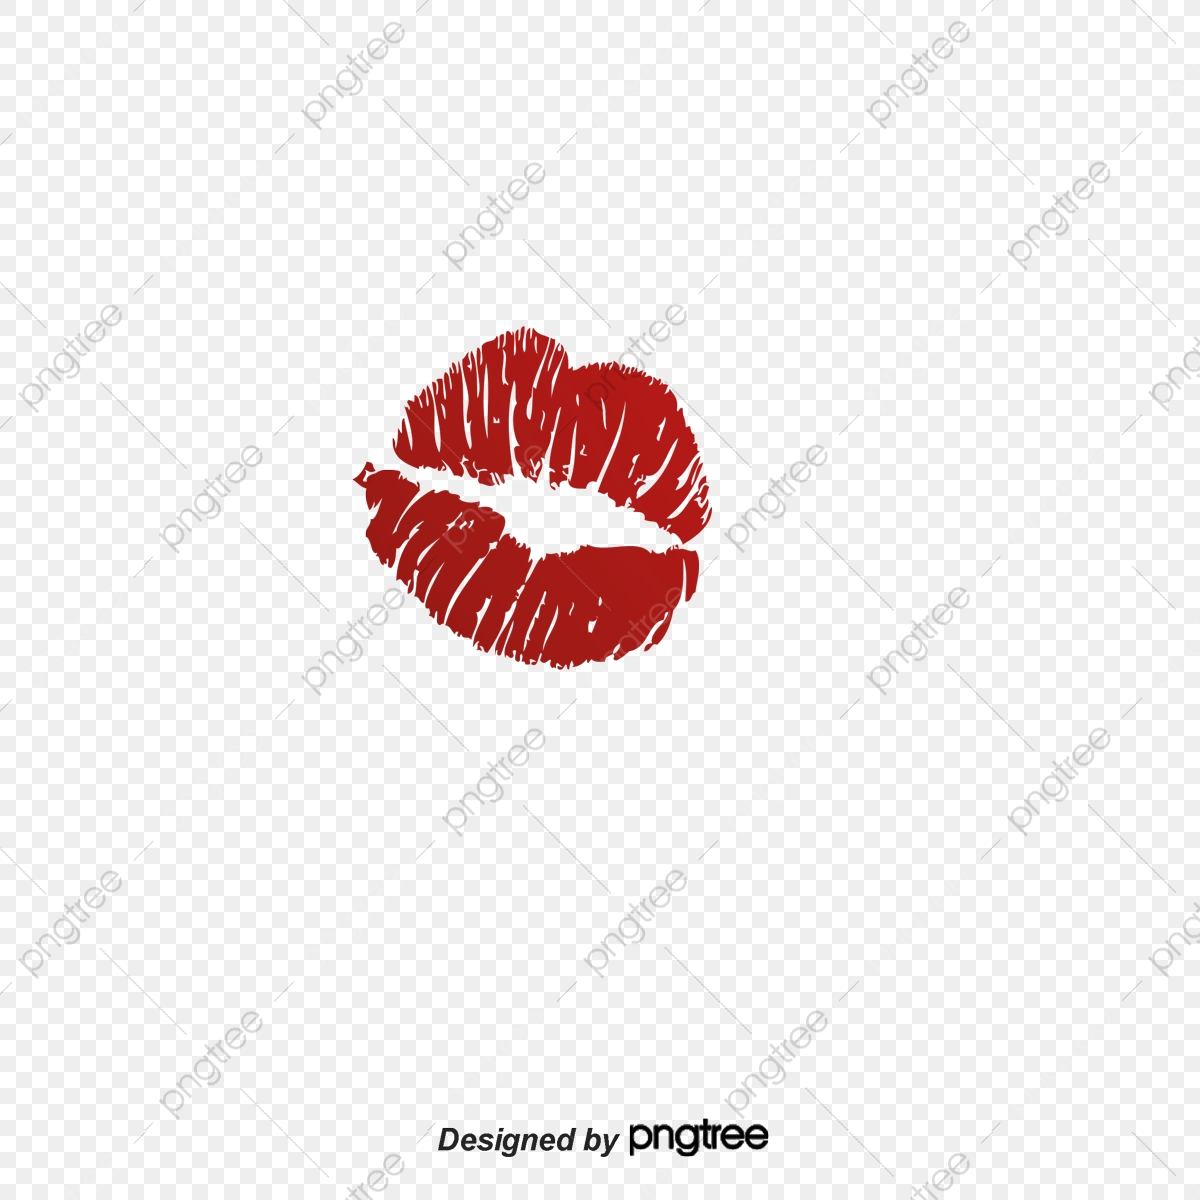 Mouth clipart lip shape. Love lips material free